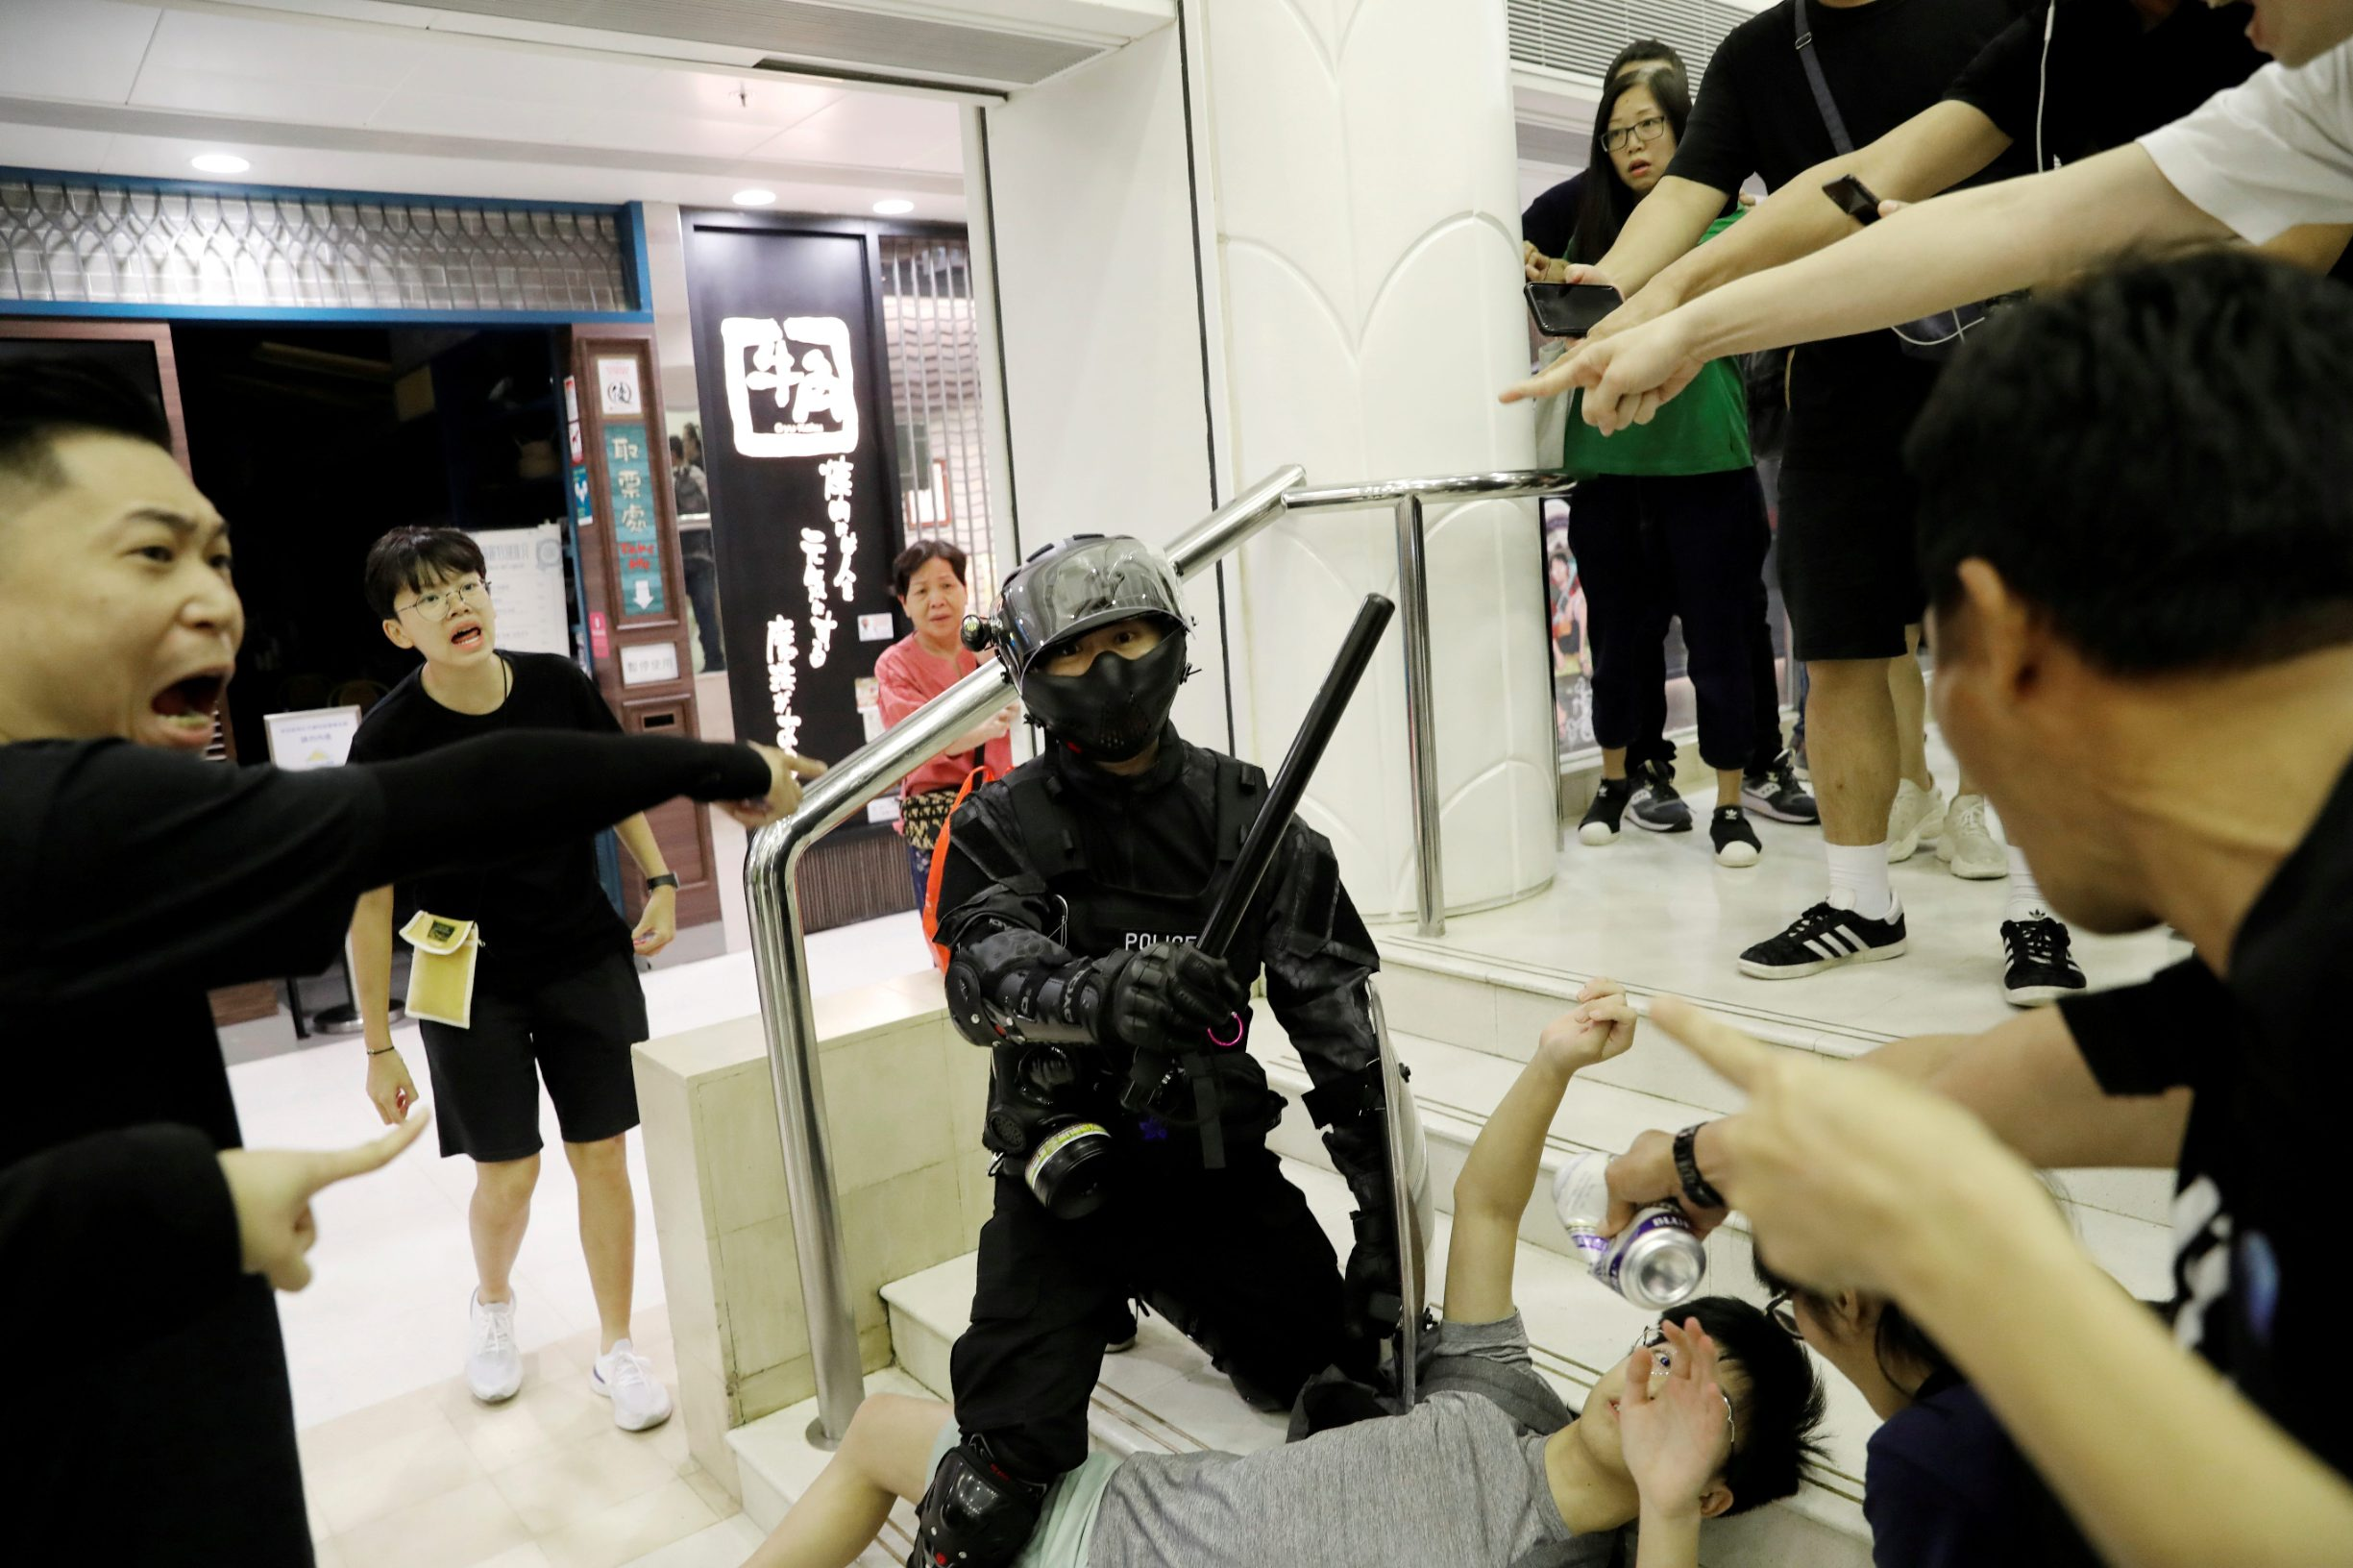 Riot police officer detains a protester at a shopping mall in Tai Po in Hong Kong, China November 3, 2019.  REUTERS/Kim Kyung-Hoon     TPX IMAGES OF THE DAY